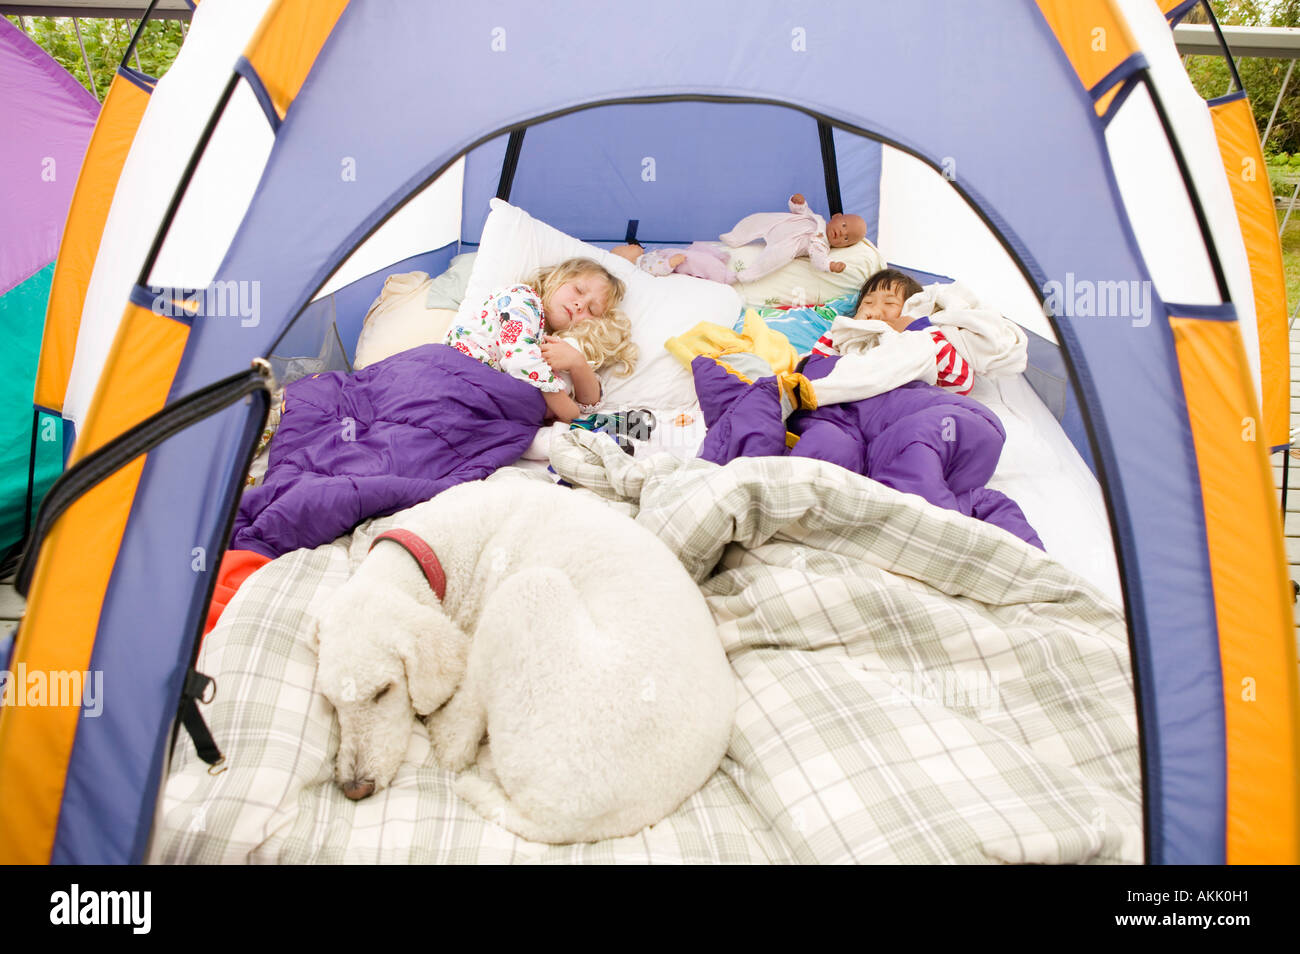 Young girls sleeping in tent with dog & Young girls sleeping in tent with dog Stock Photo: 8581904 - Alamy